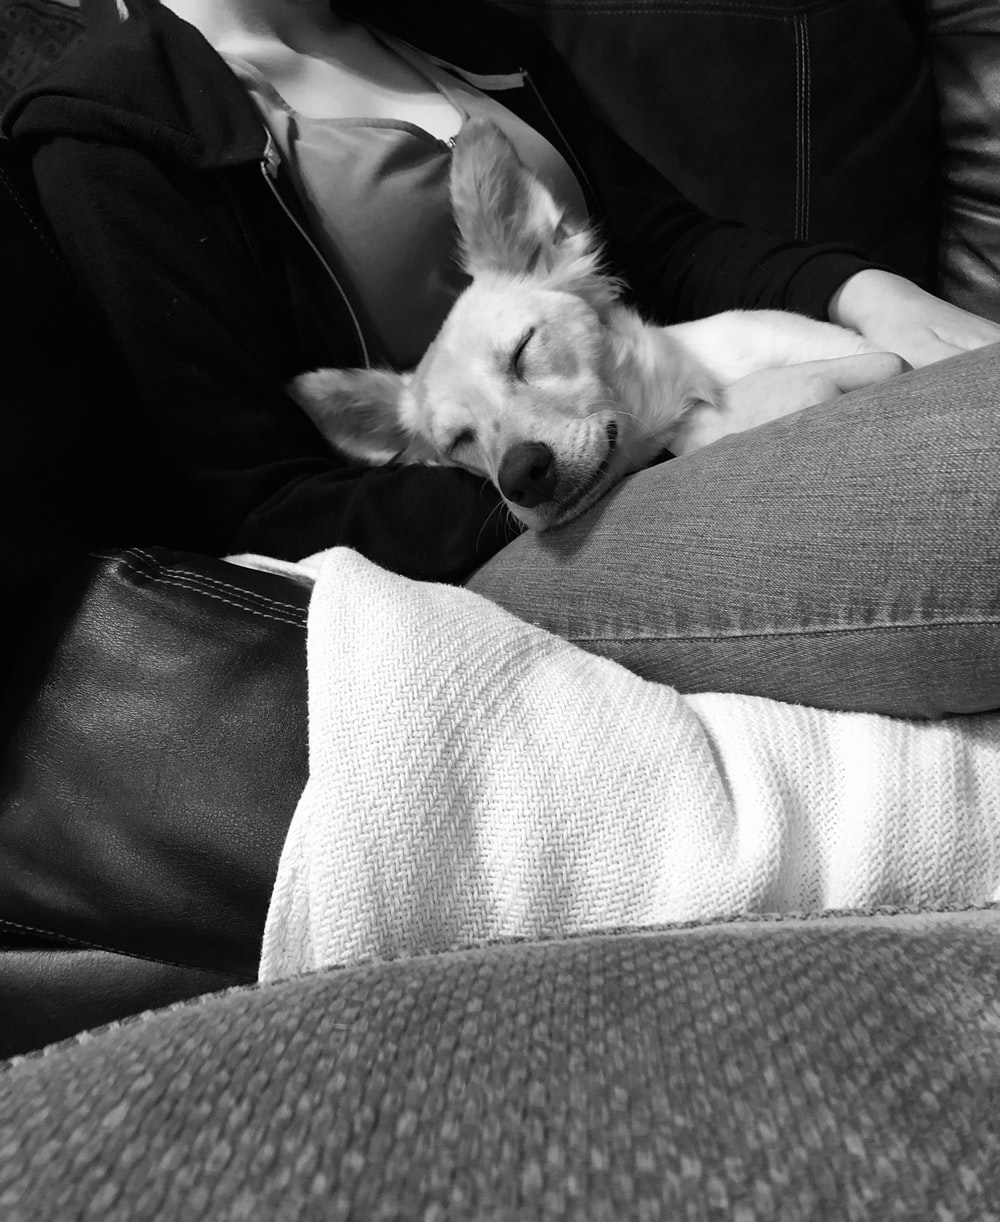 grayscale photography of dog sleeping on woman's lap